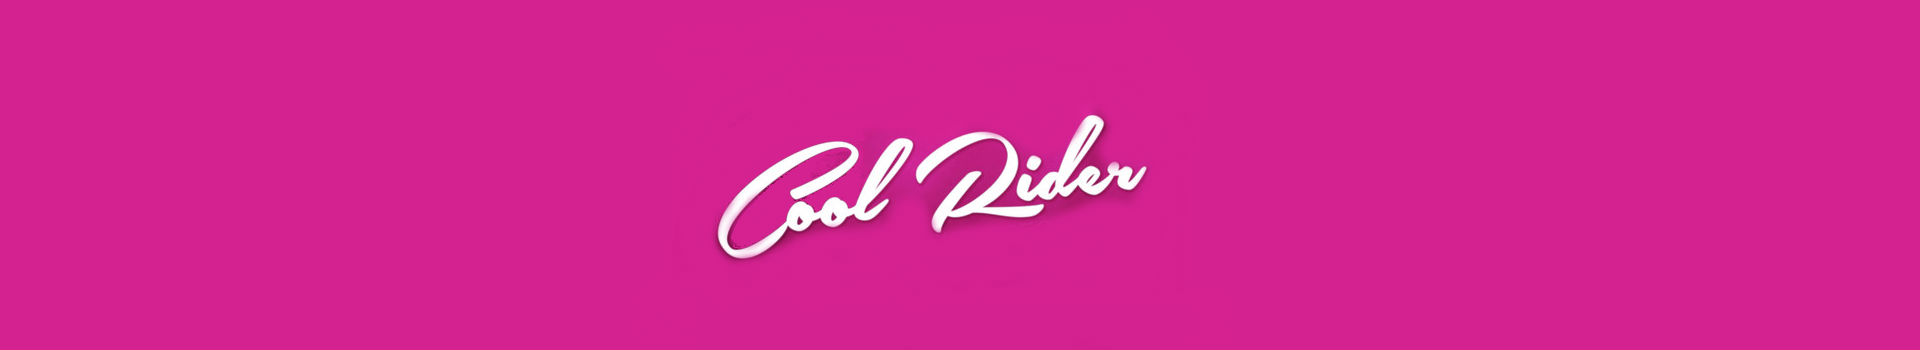 Cool Rider: The Cult Musical Sequel banner image